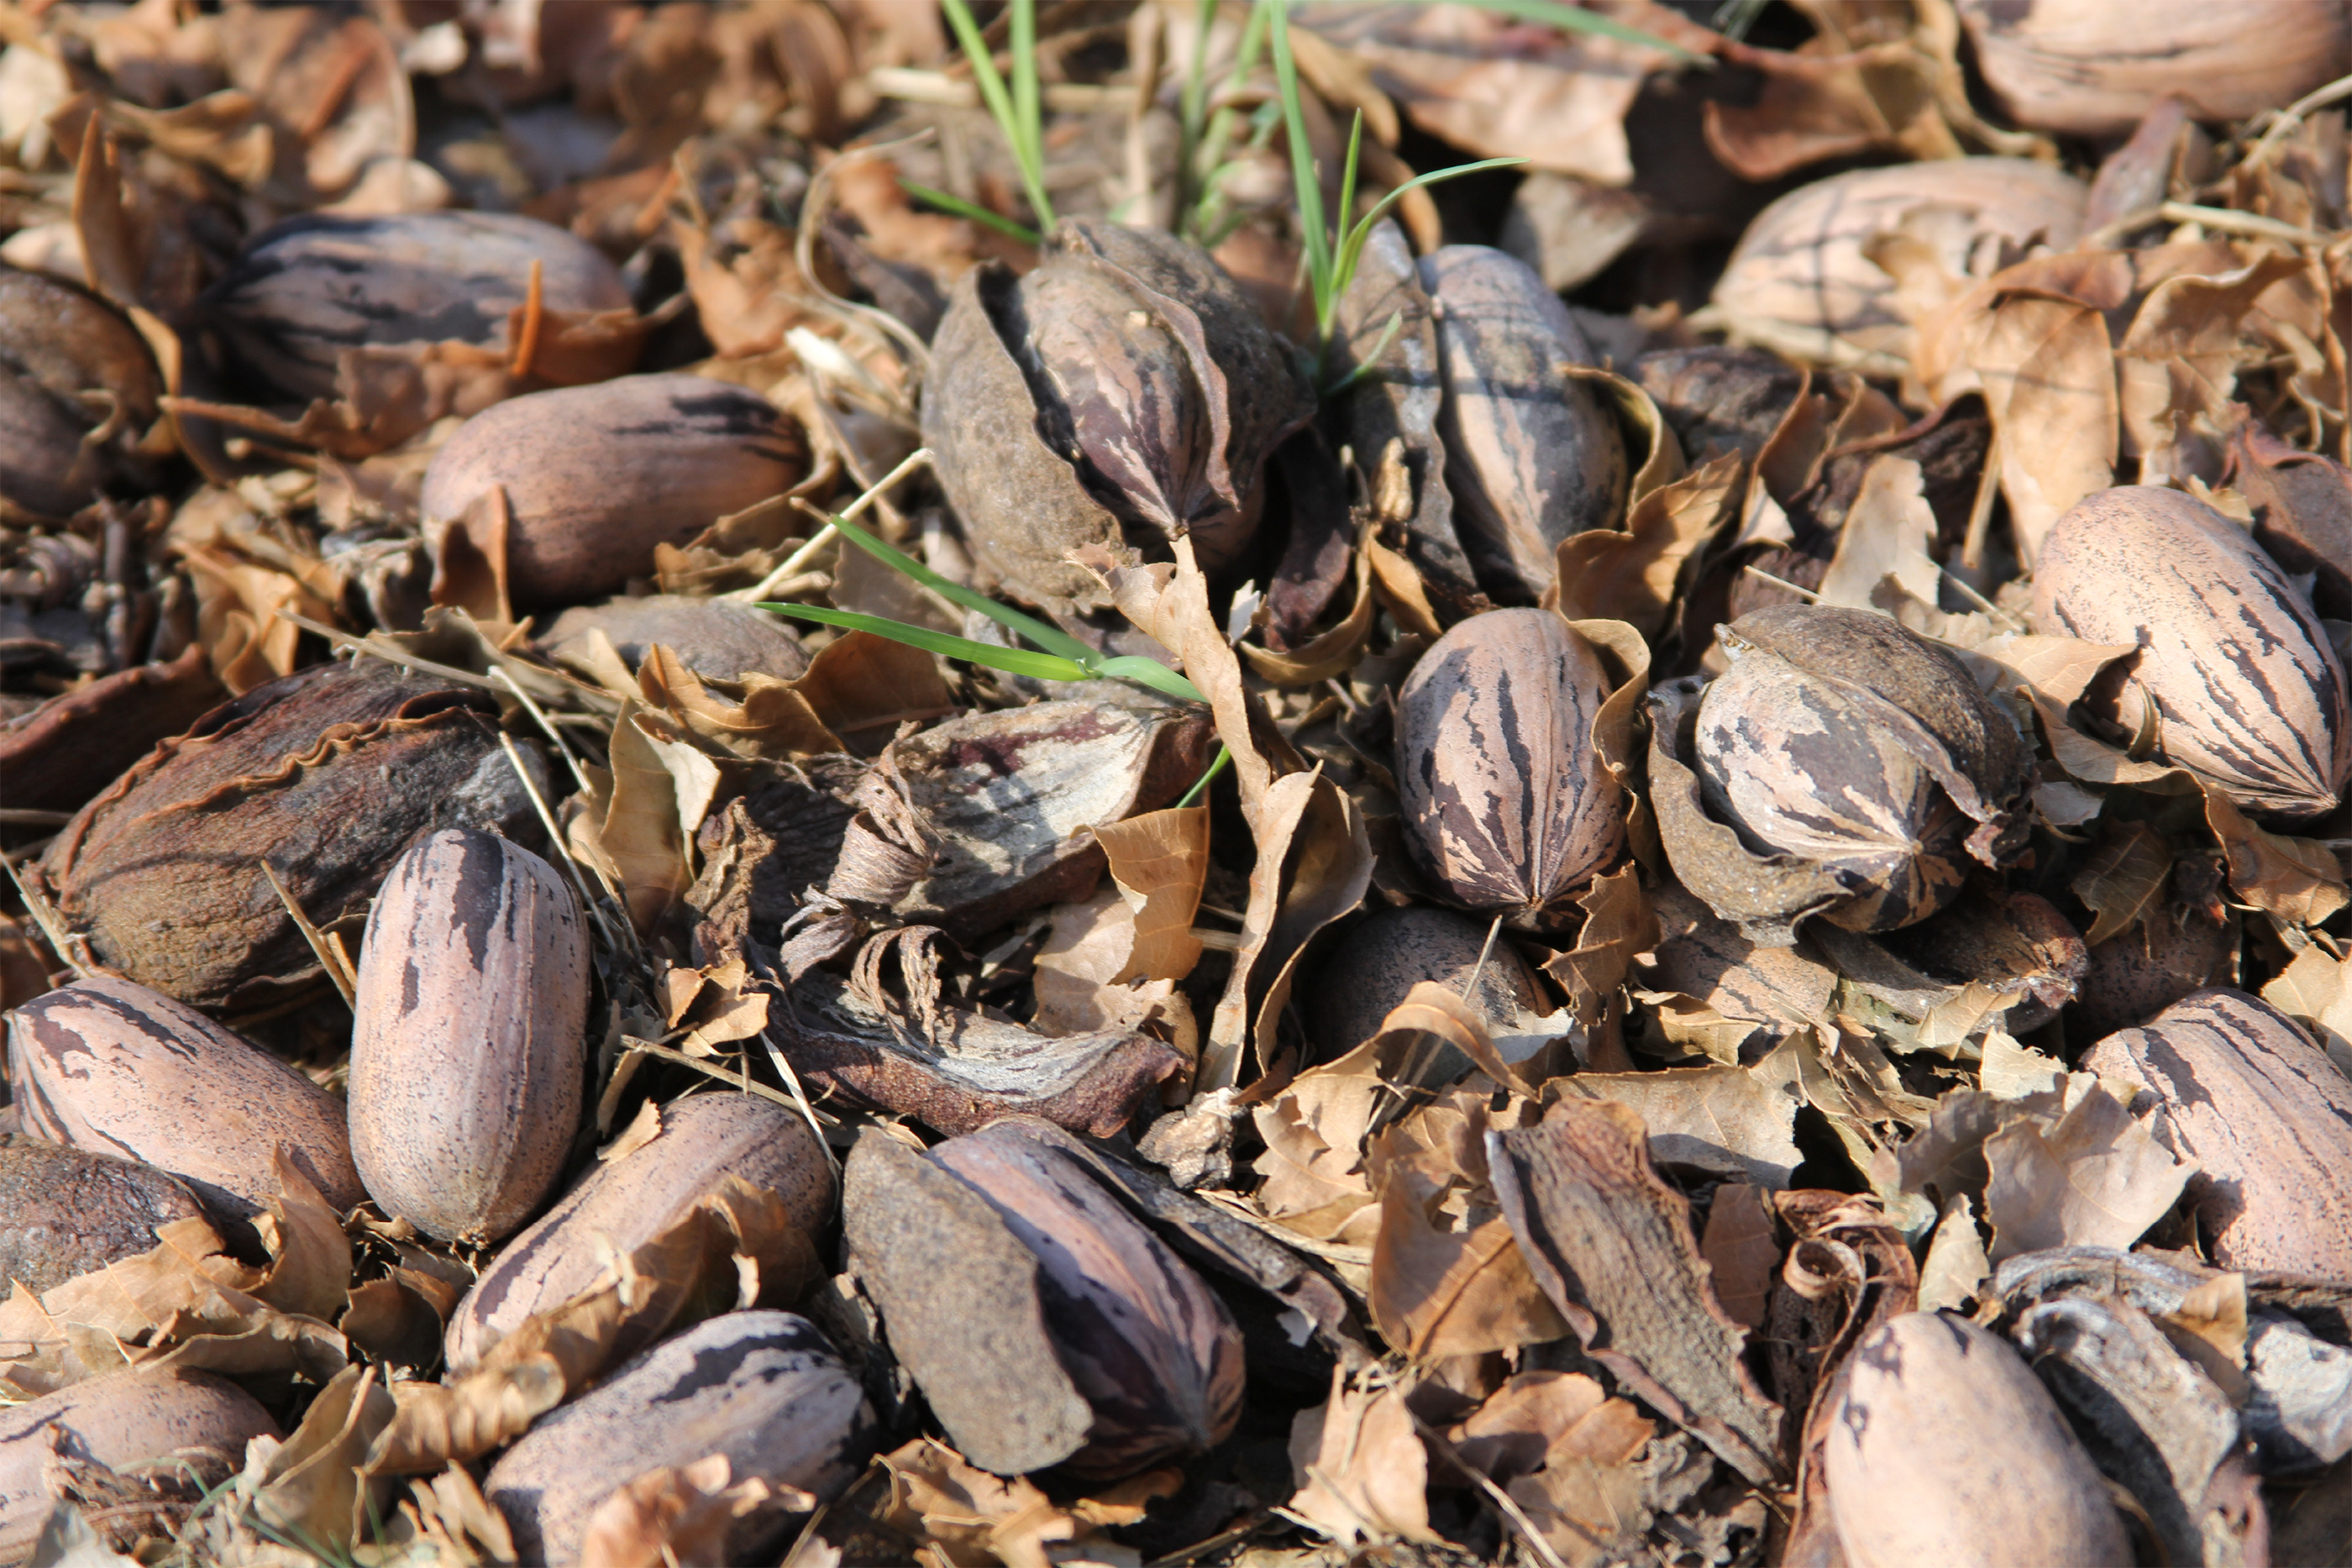 A year after the devastation of Hurricane Michael, Georgia's pecan farmers are preparing for this year's crop. Pictured are pecans on the ground following Hurricane Michael in Decatur County, Georgia.